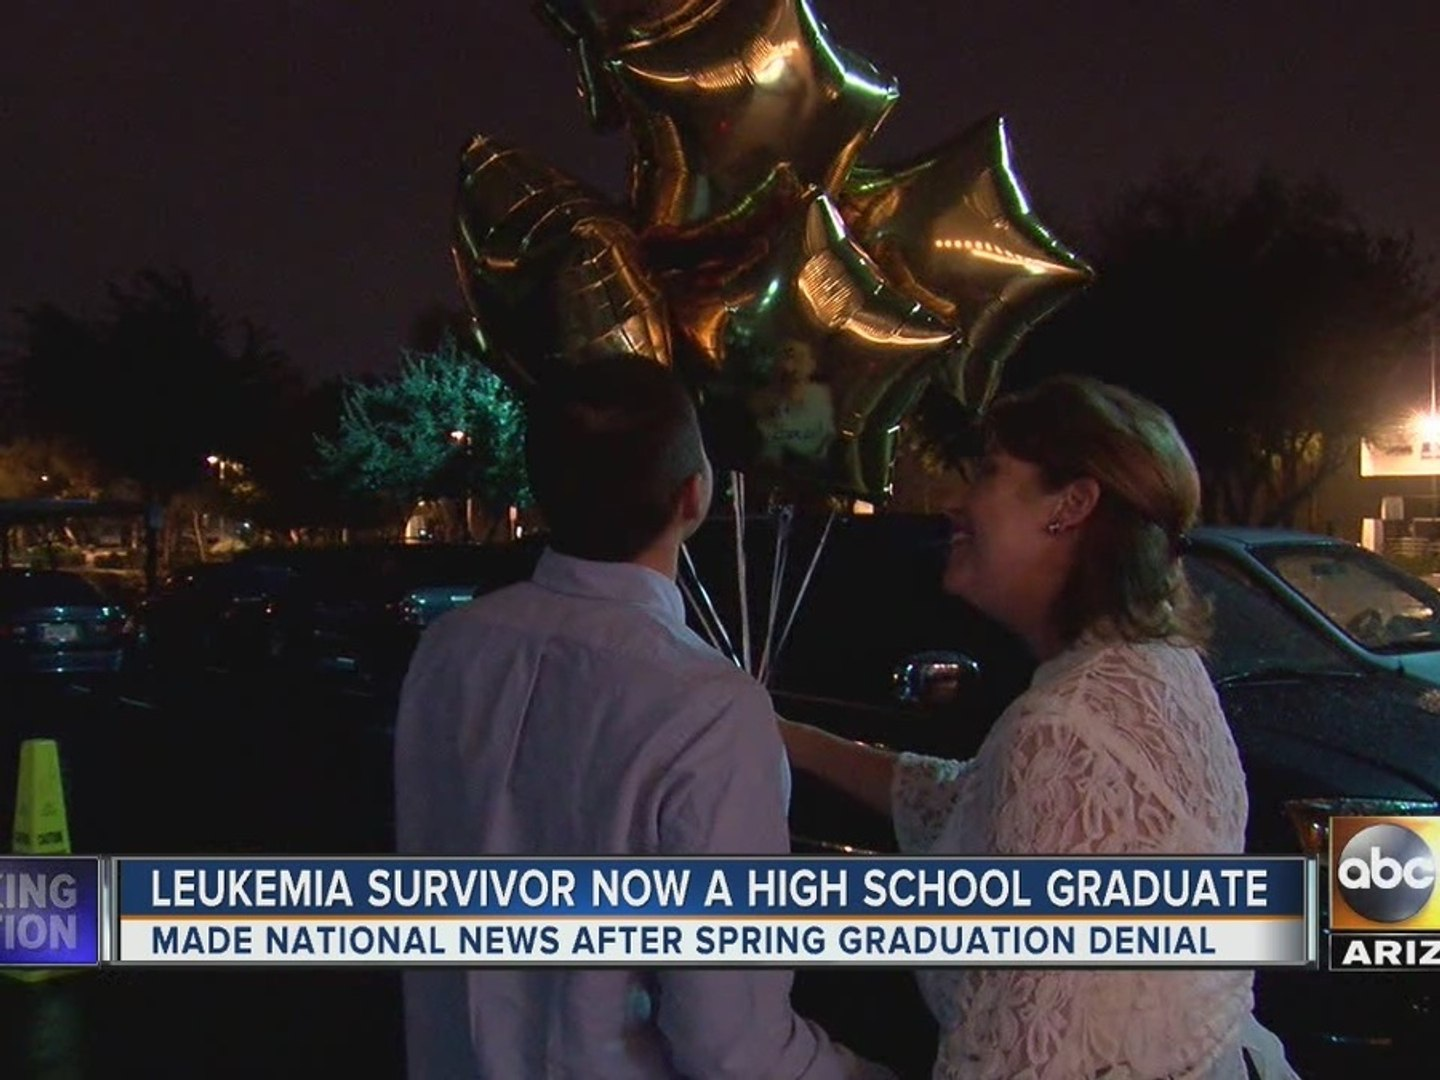 Leukemia survivor denied chance to graduate, but he's given a special second chance